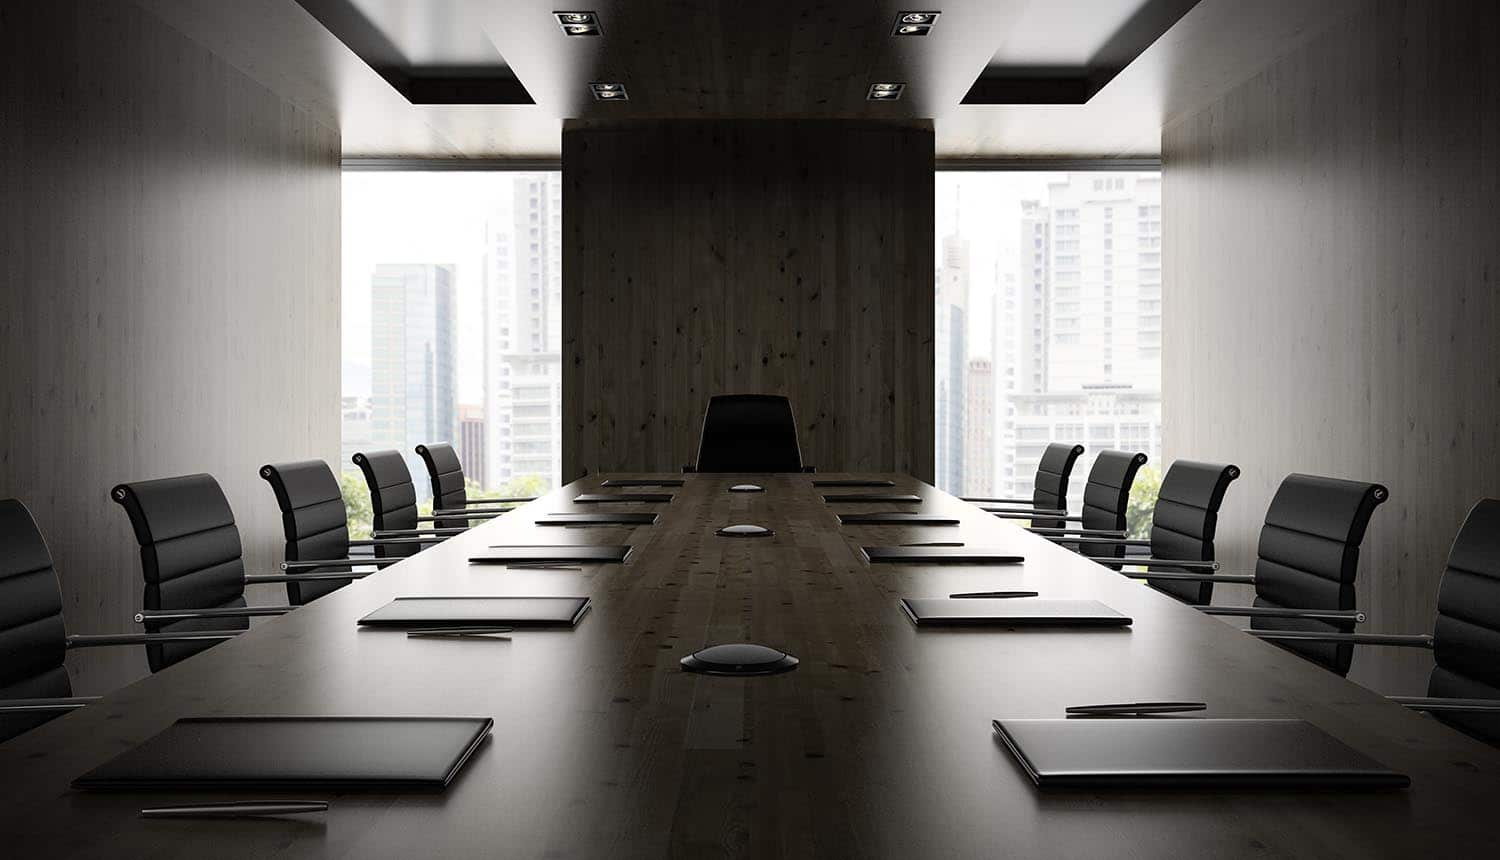 Interior of modern boardroom with black armchairs showing executive commitment and cyber complacency